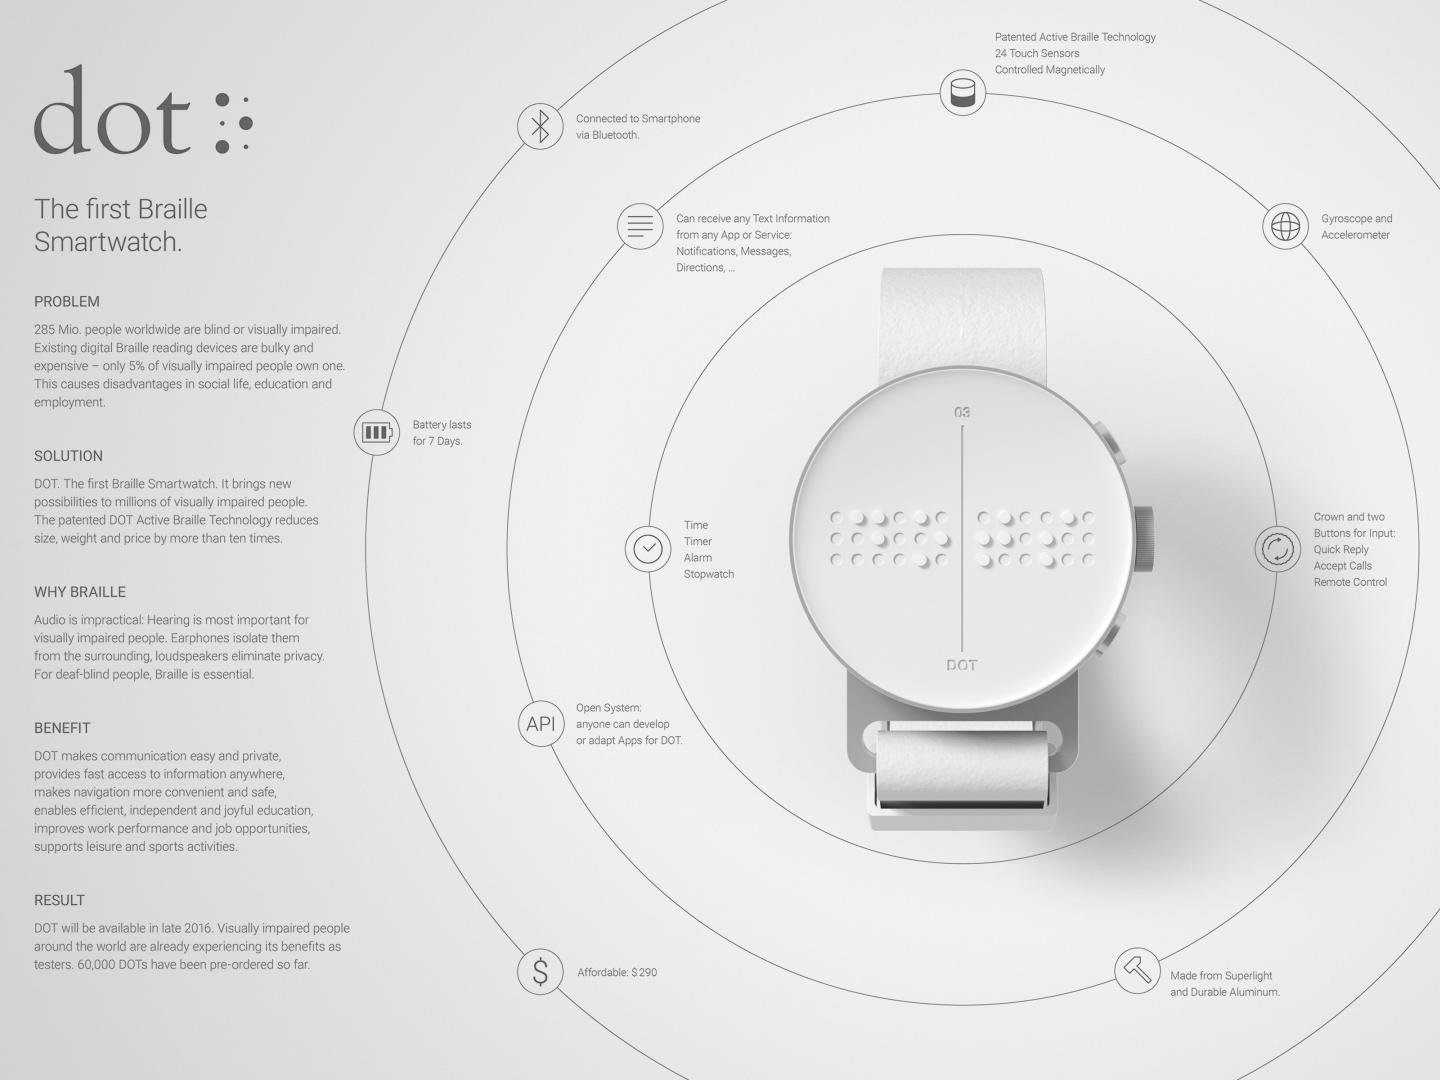 DOT. The first Braille Smartwatch Thumbnail